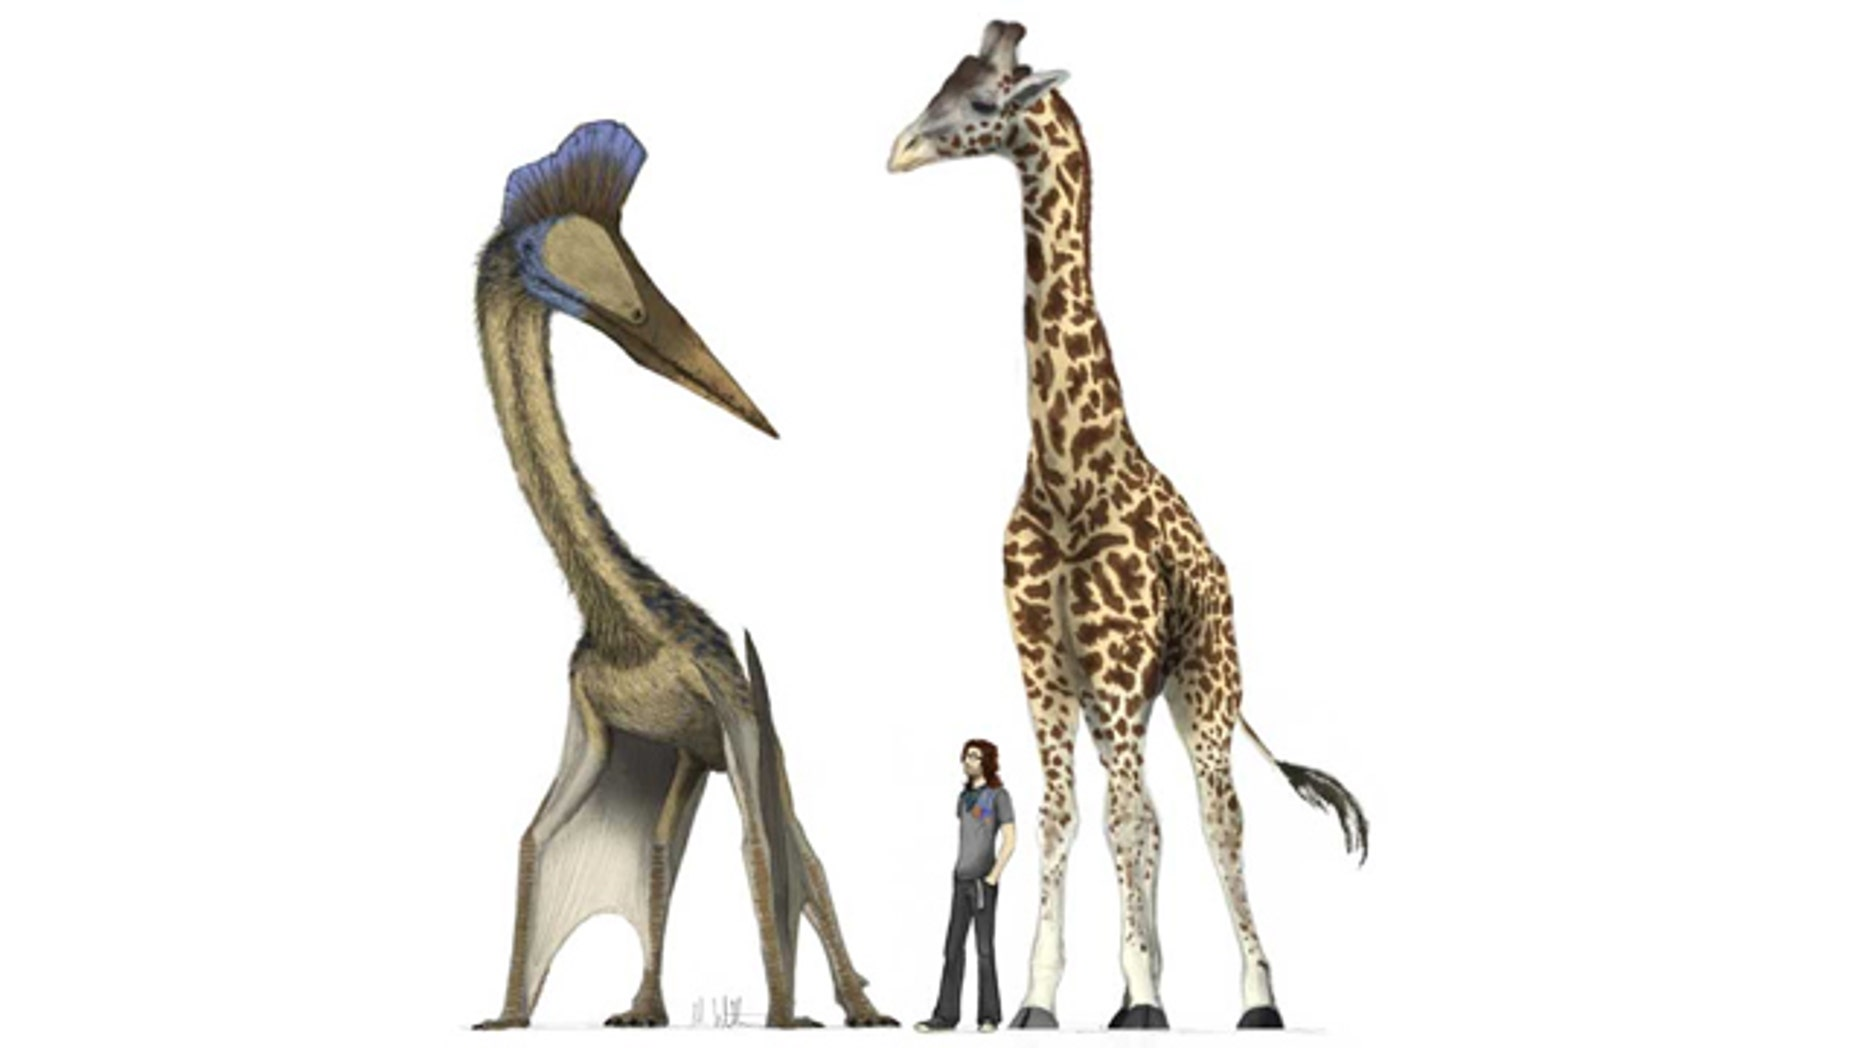 Illustration of a giant 10 meter span pterosaur alongside a record breaking 6 meter tall giraffe. The hollow, expanded skeleton of the pterosaur means that, despite its size, it is only one sixth of the giraffe's weight.